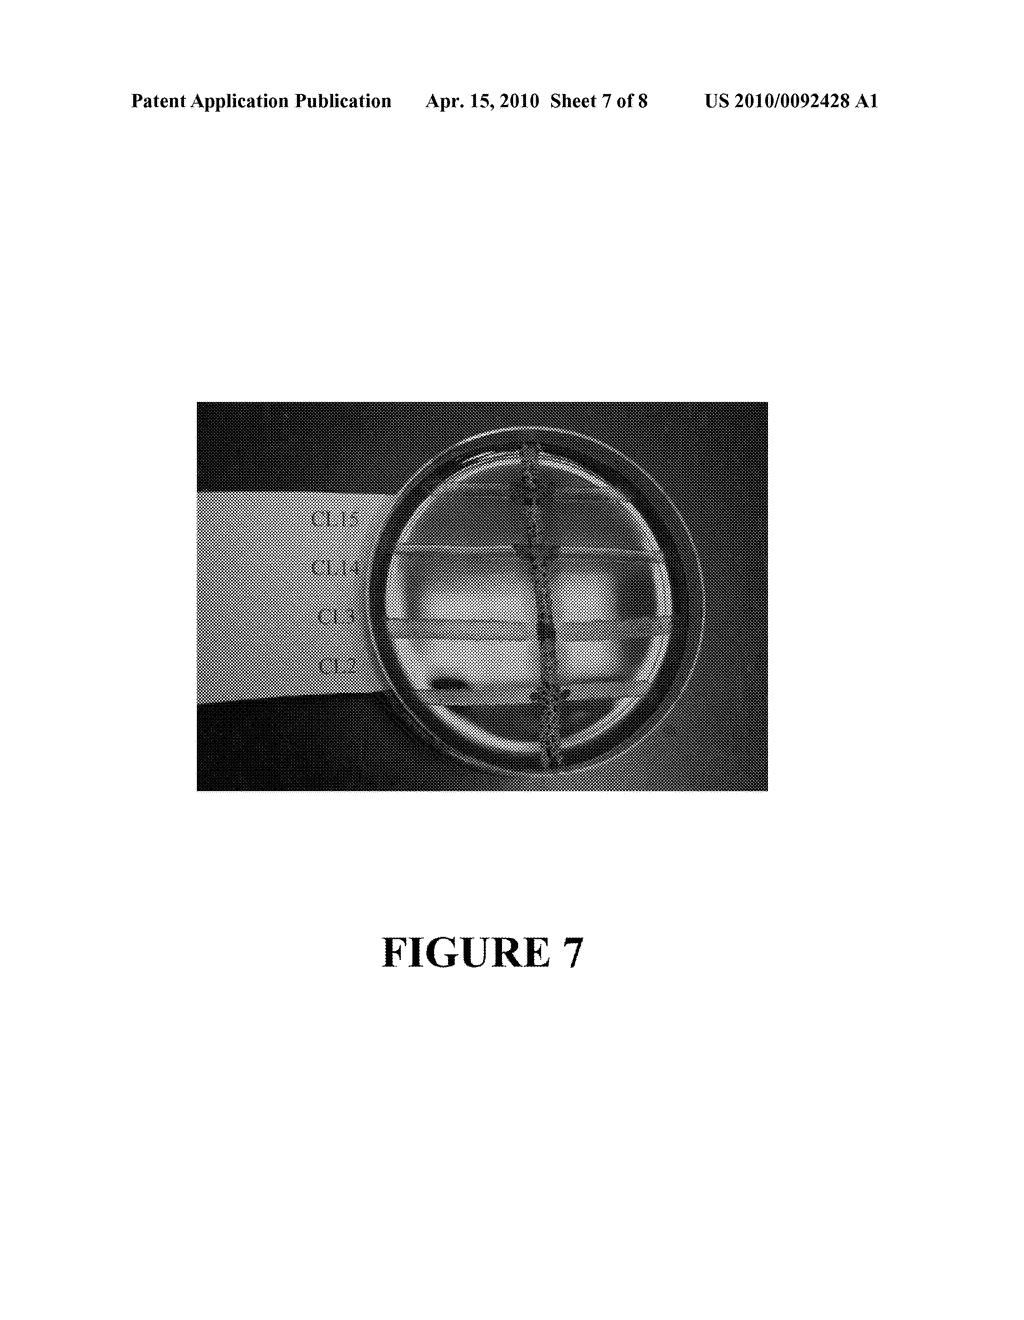 Method For Using A Bacillus Subtilis Strain To Enhance Animal Health - diagram, schematic, and image 08